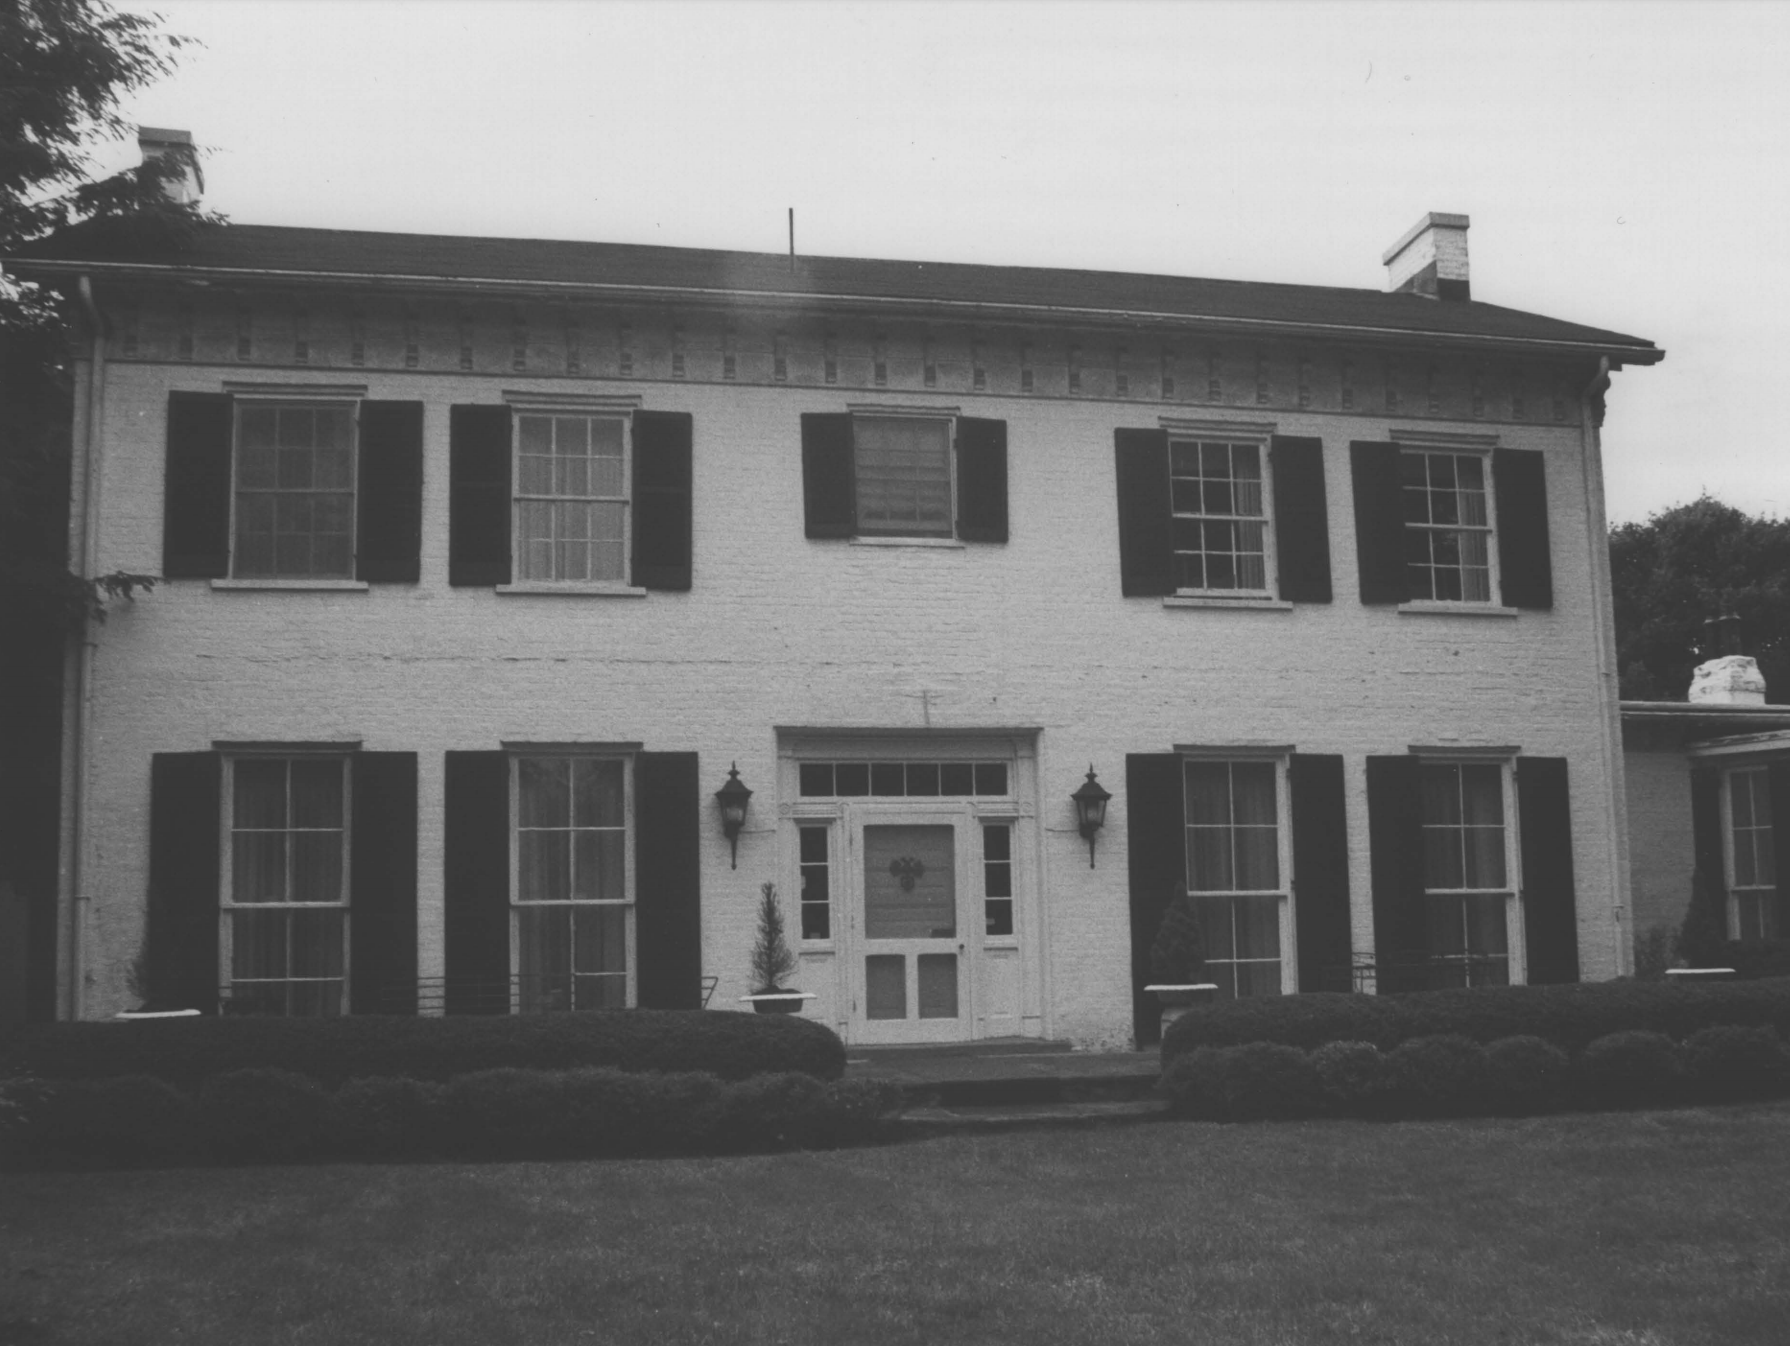 The house, pictured in 1980